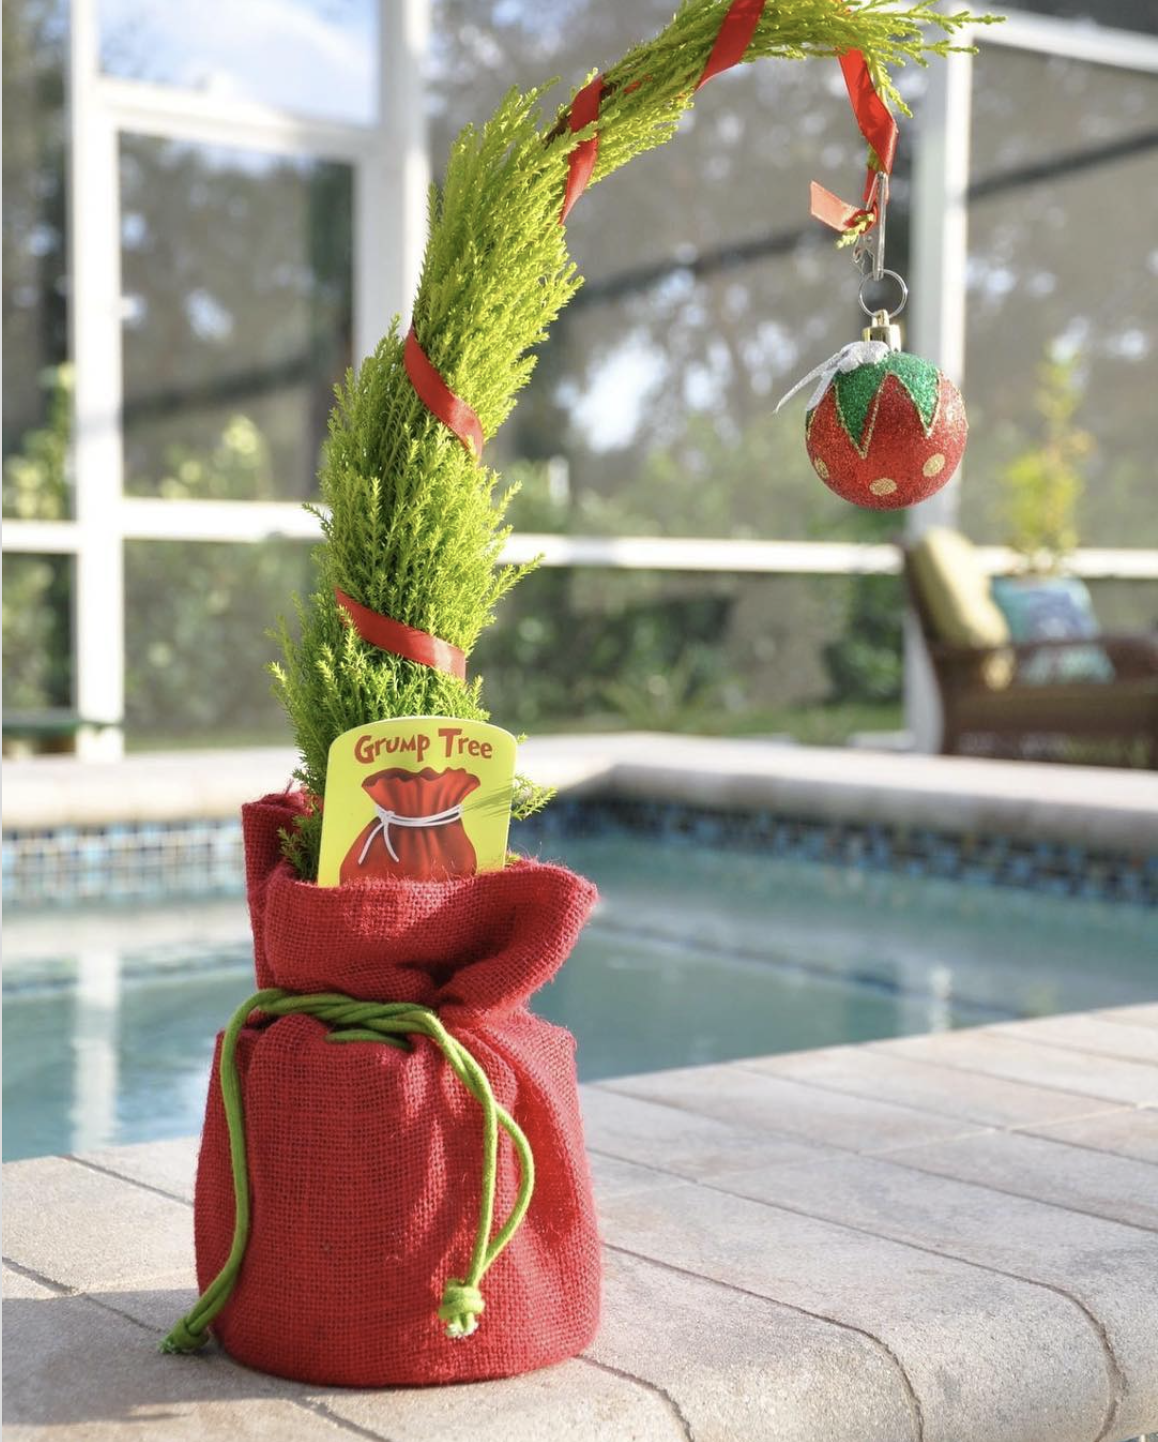 You Can Buy A Grinch Inspired Tree At Trader Joe S That Will Make Your Heart Grow Three Sizes